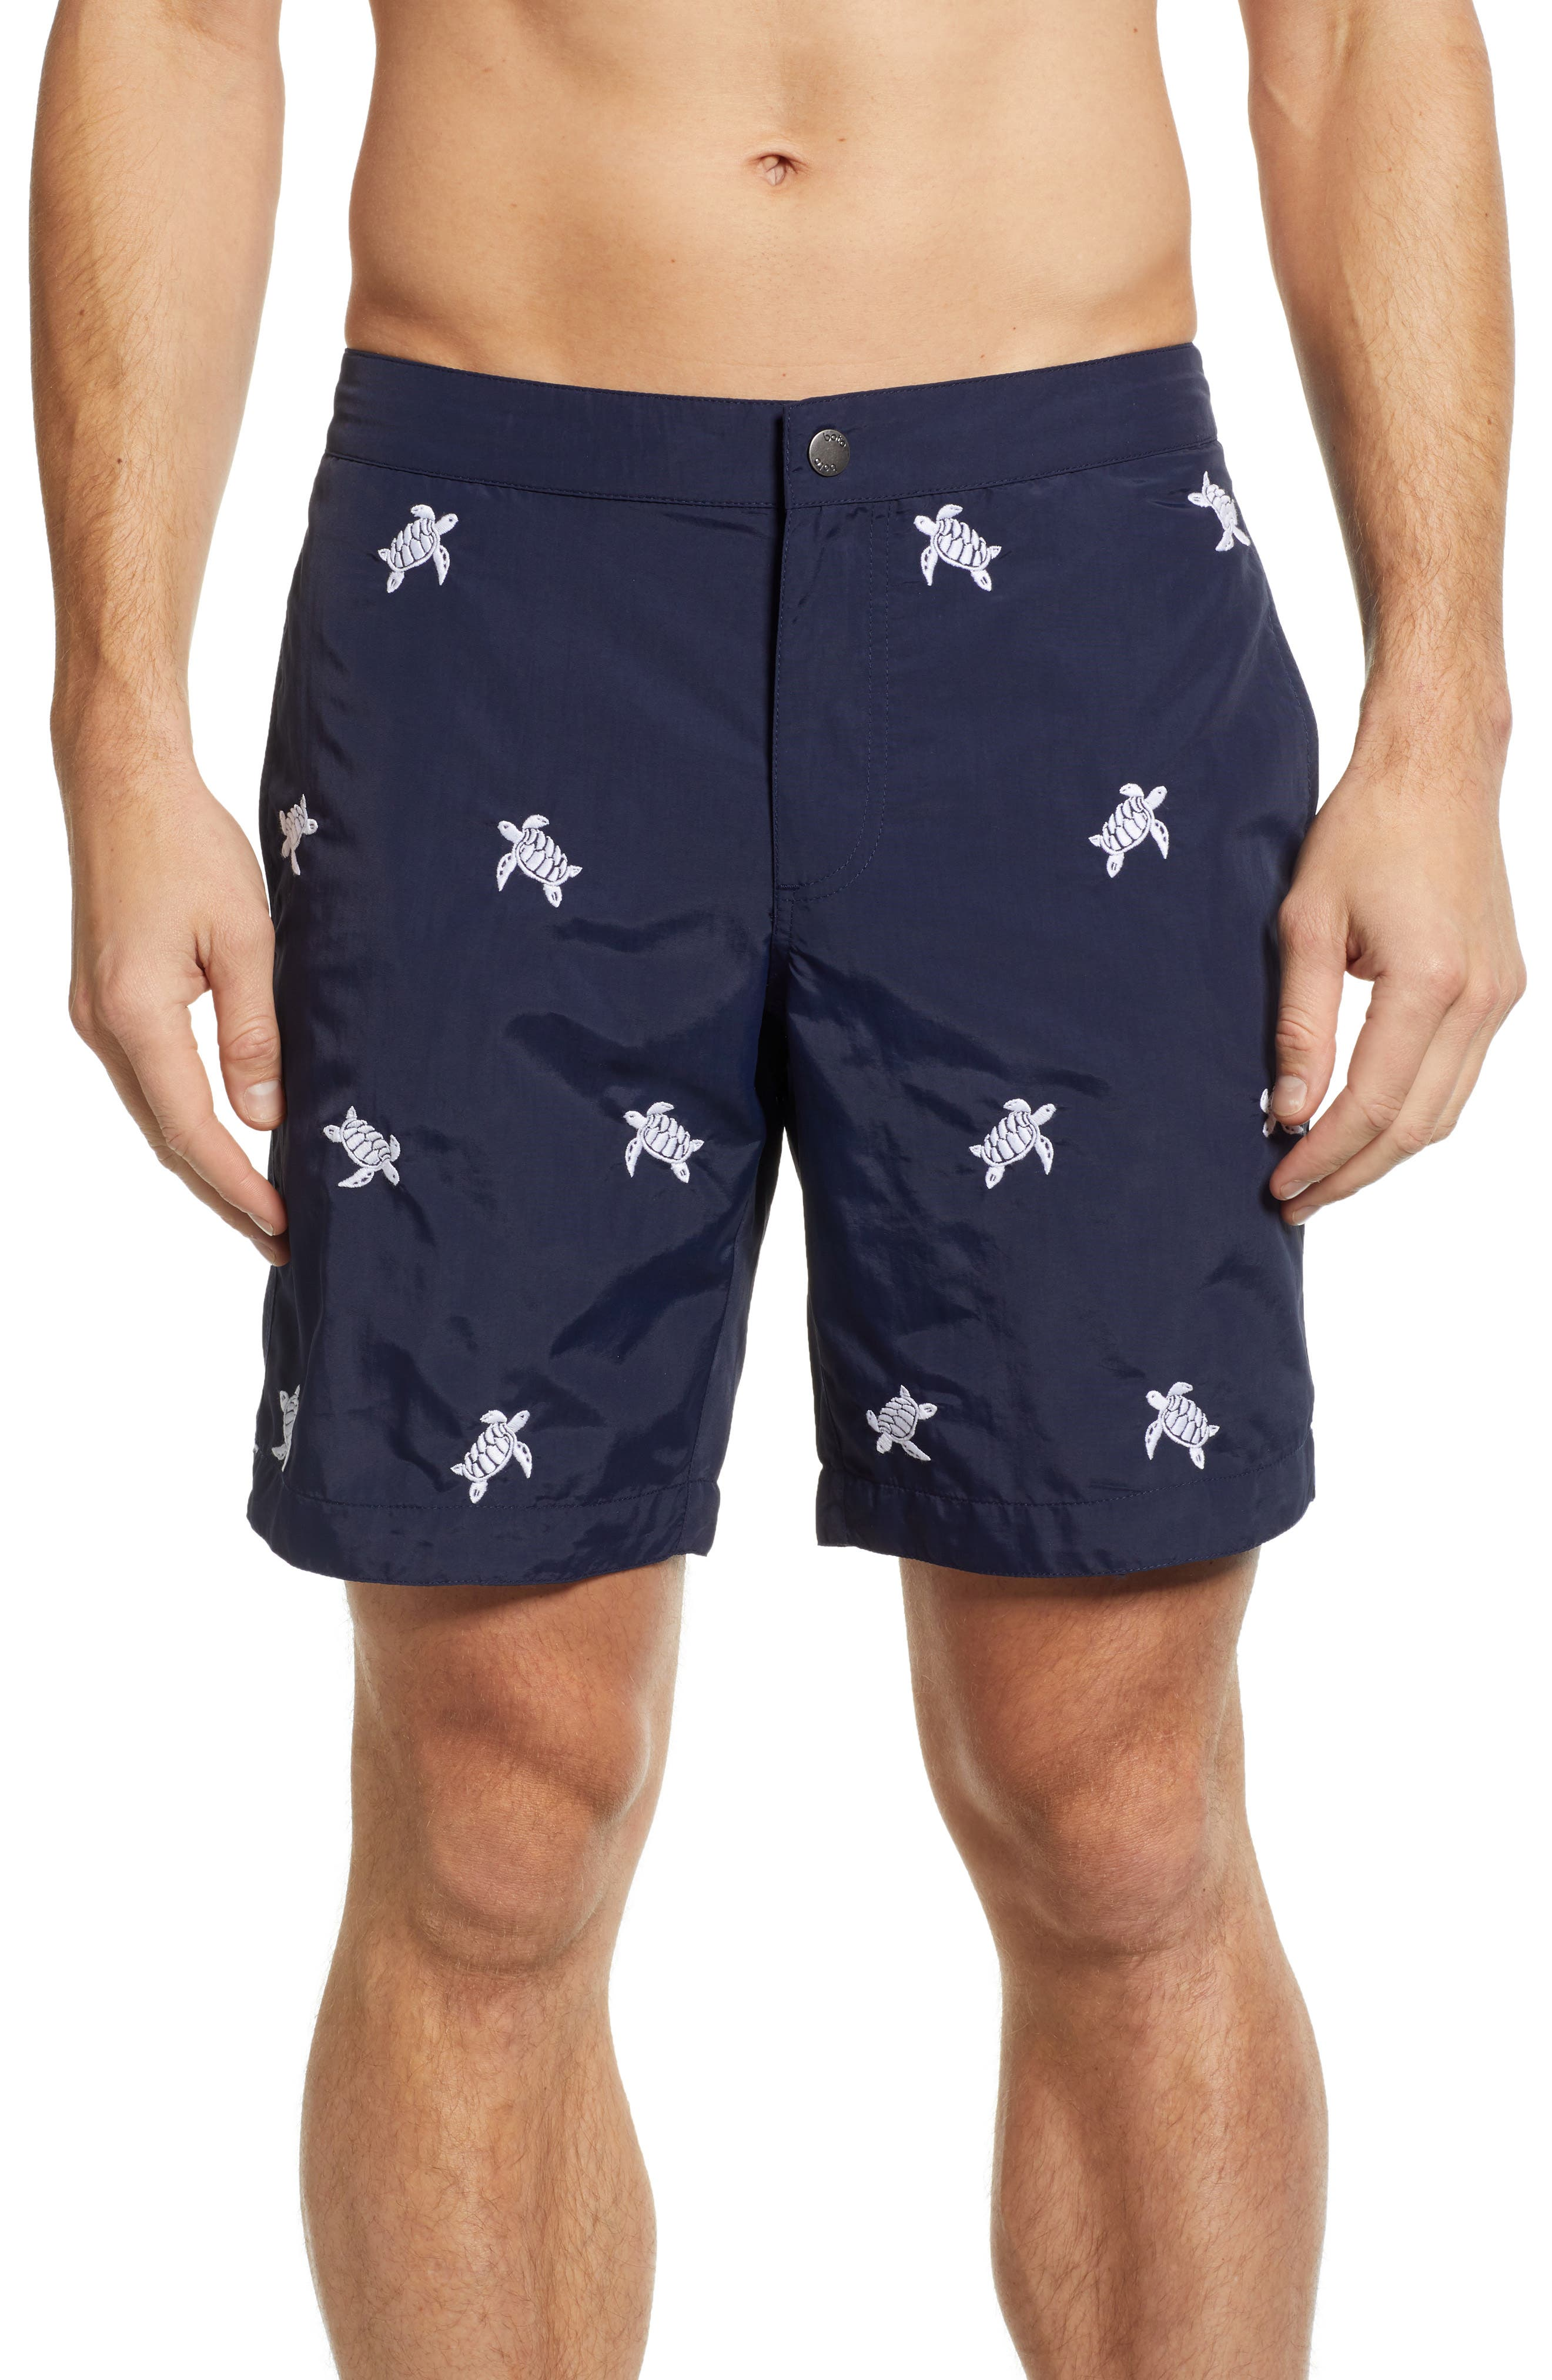 Aruba Embroidered 8.5 Inch Swim Trunks,                         Main,                         color, NAVY EMBROIDERED TURTLES